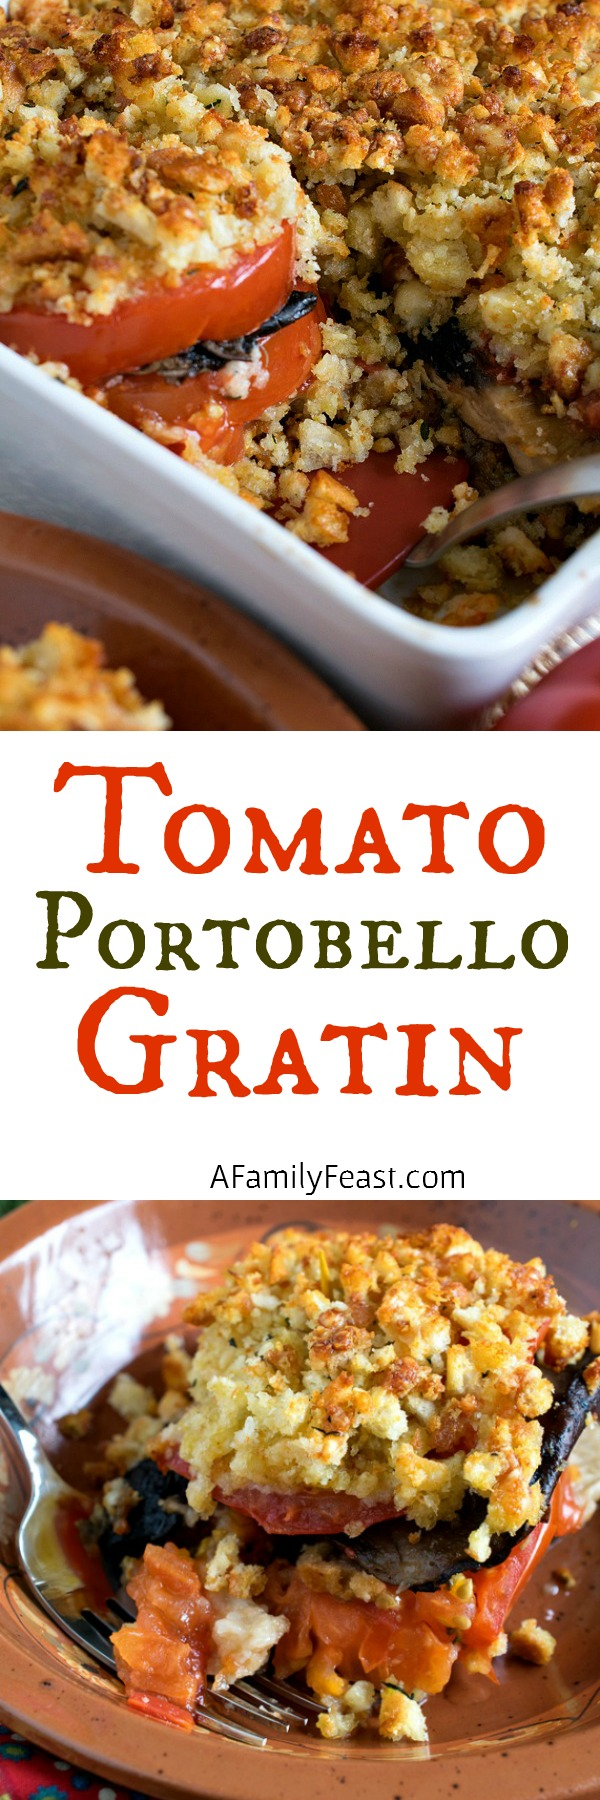 Tomato Portobello Gratin - A fantastic, flavorful side dish or meatless meal.